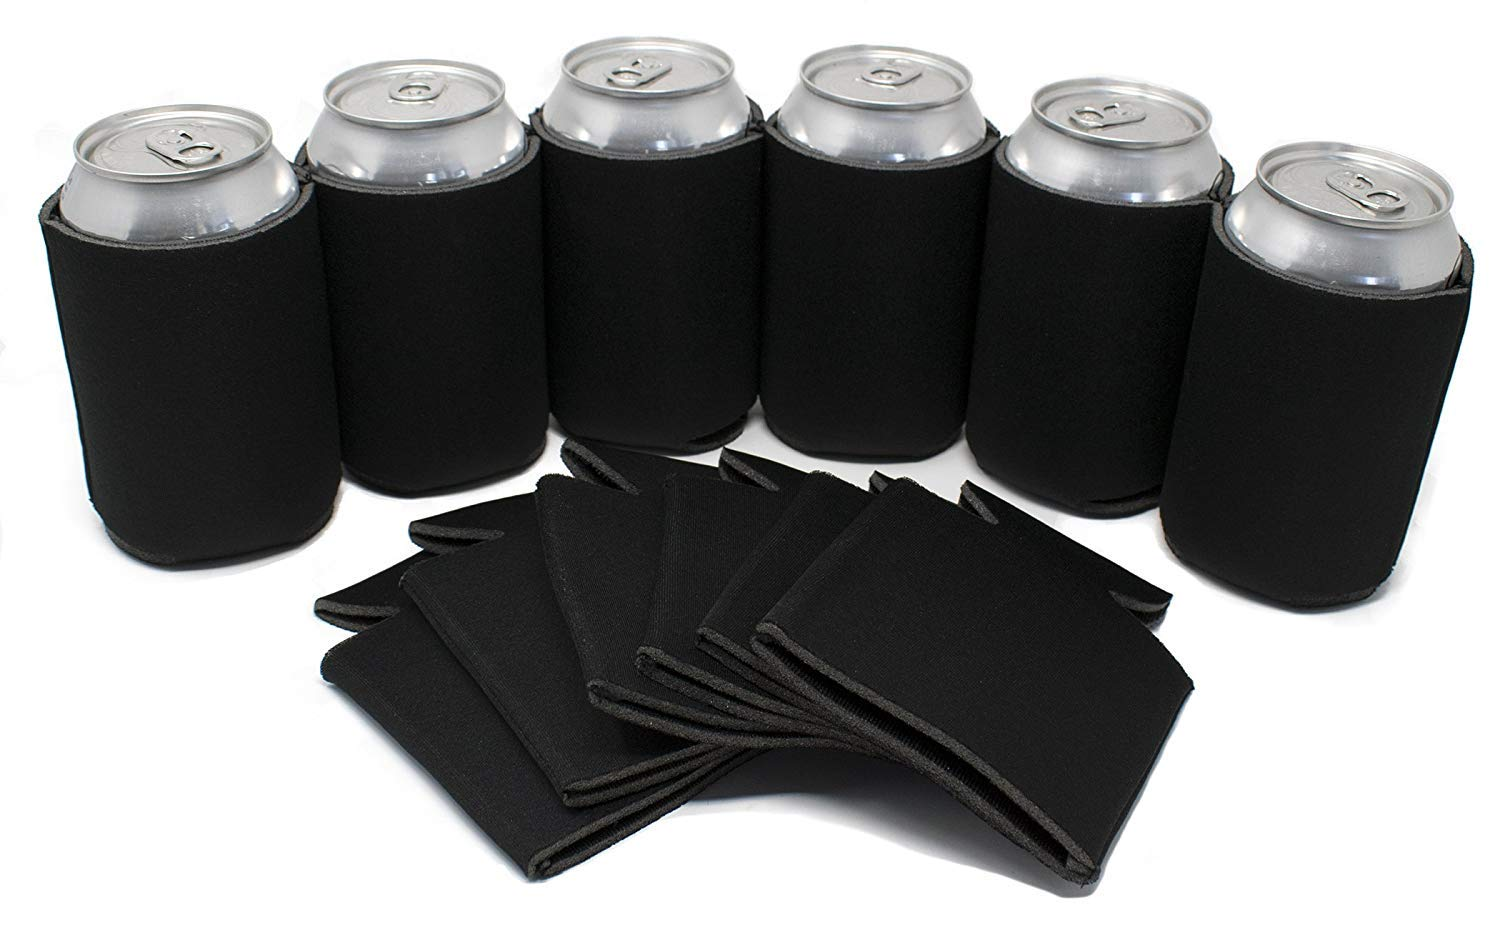 TahoeBay 12 Blank Beer Can Coolers, Plain Bulk Collapsible Soda Cover Coolies, DIY Personalized Sublimation Sleeves for Weddings, Bachelorette Parties, Funny HTV Party Favors (Black, 12)